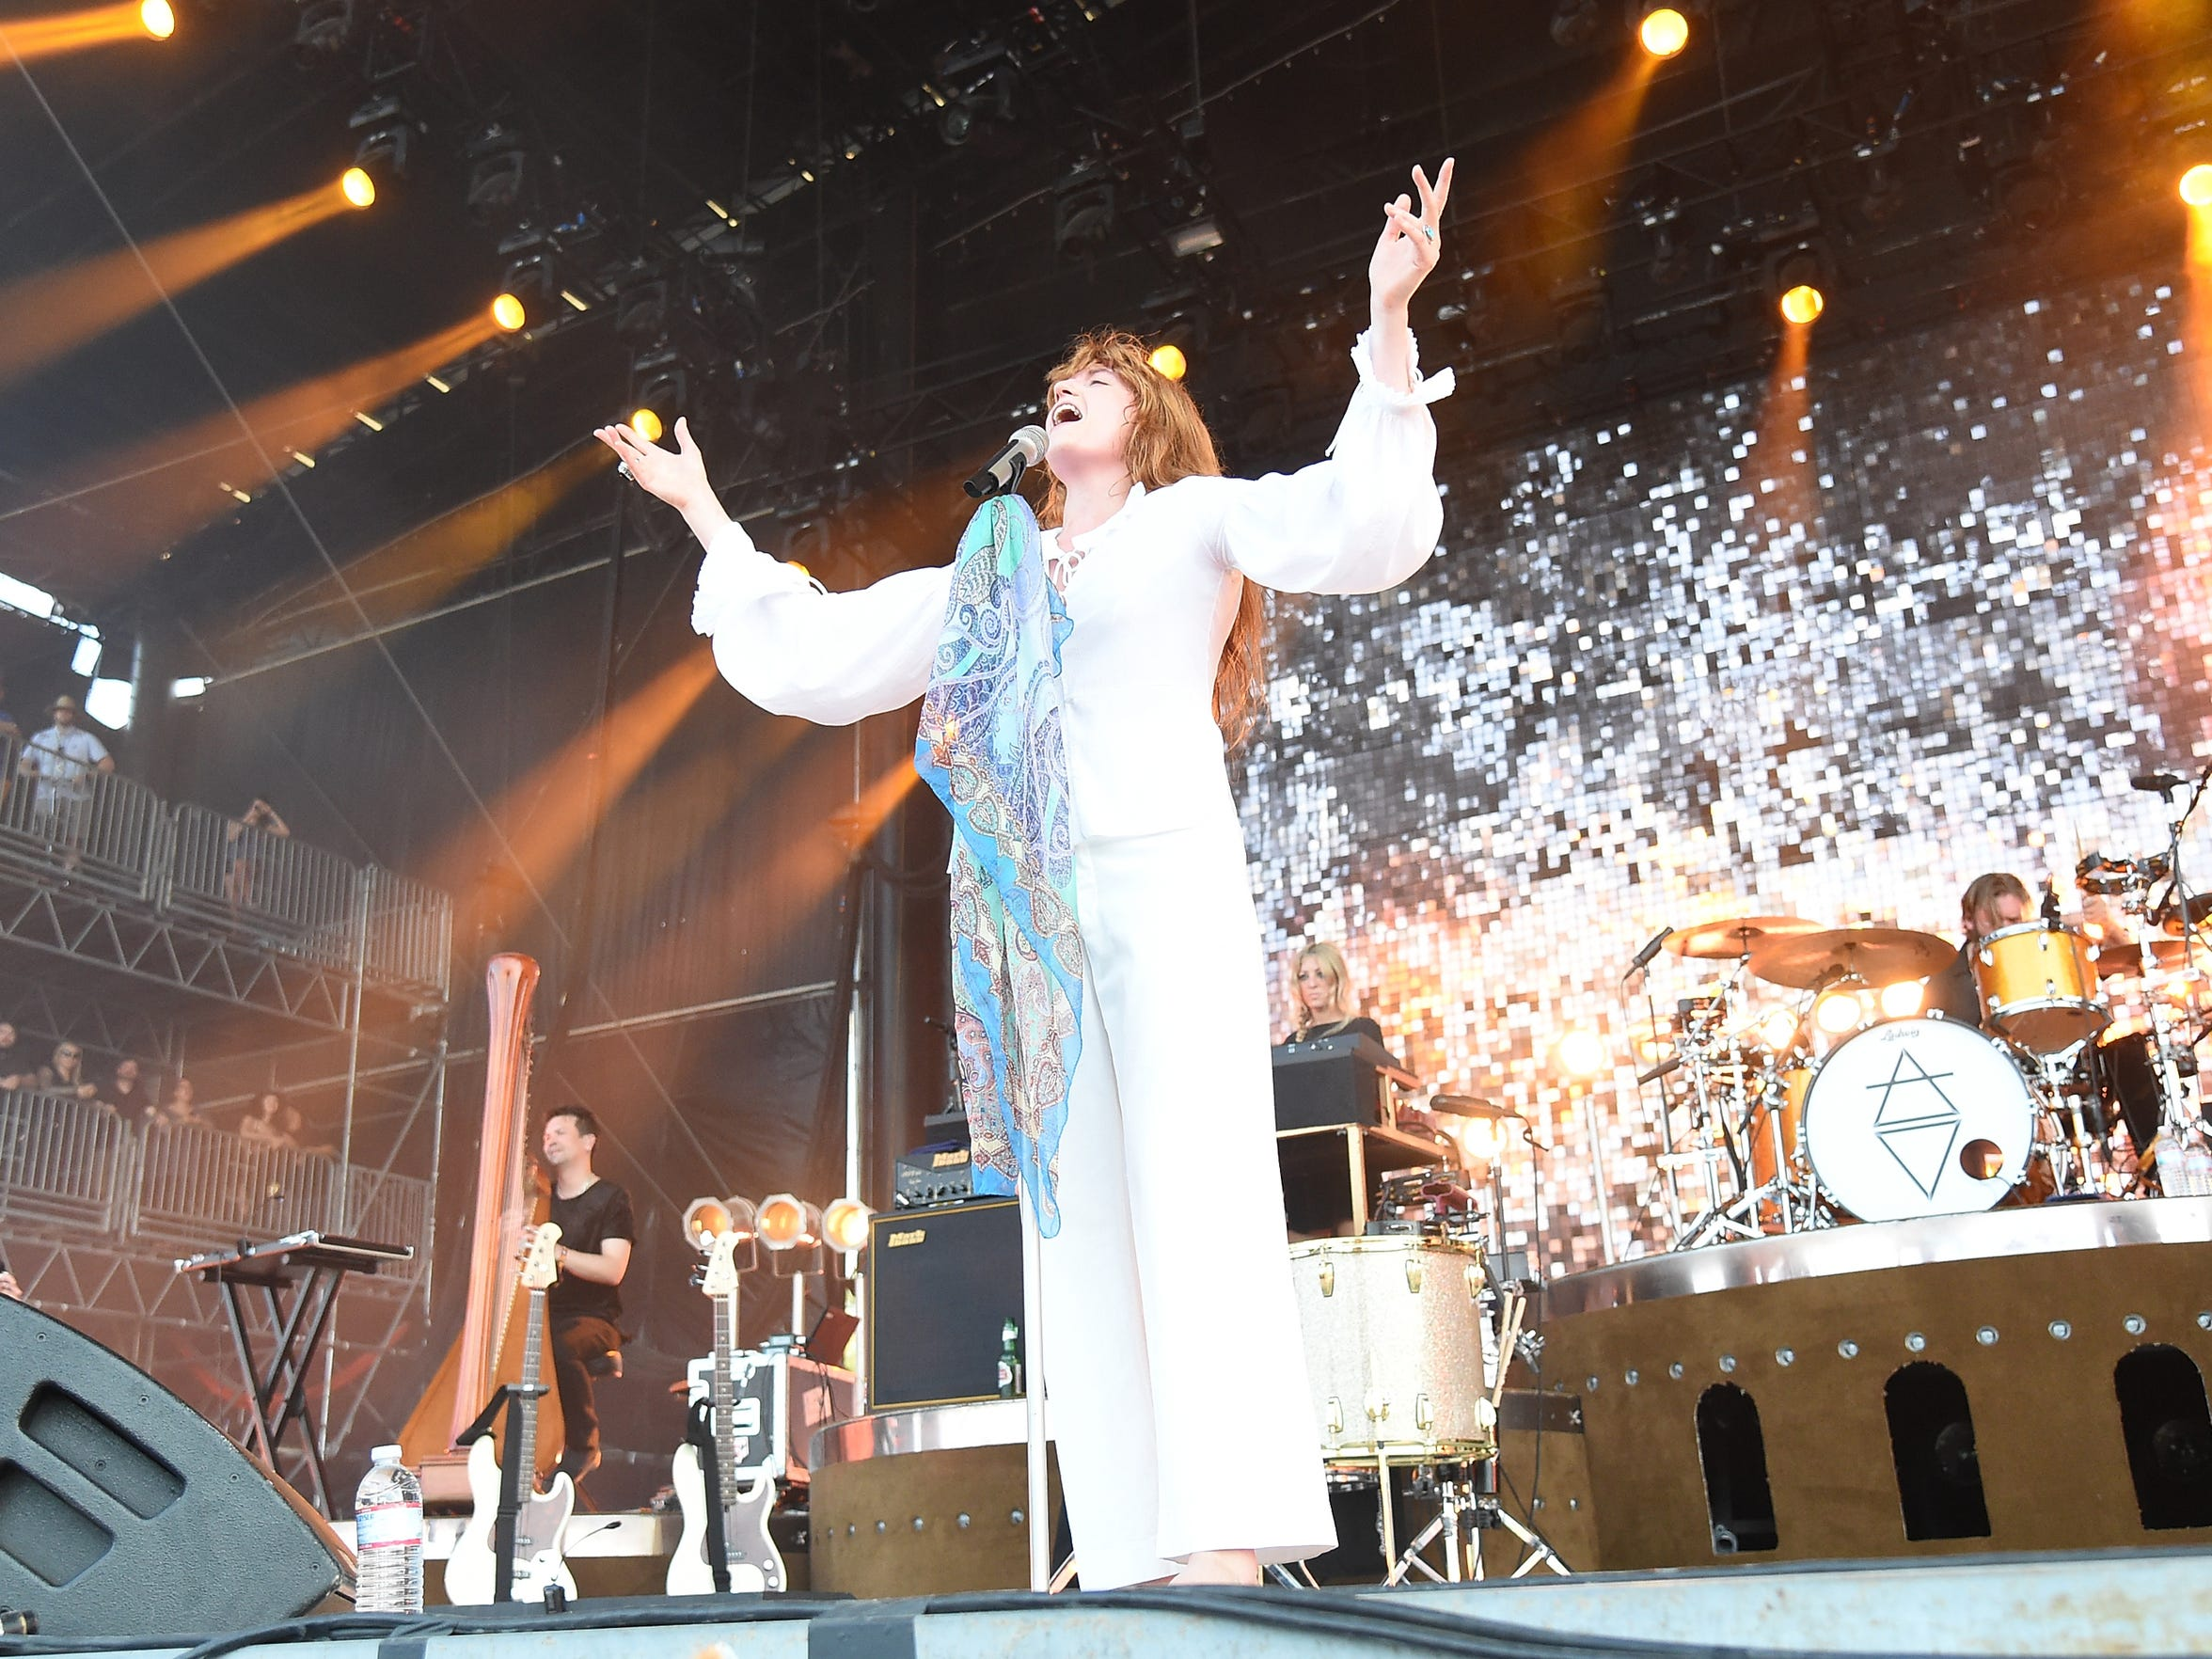 Florence and the Machine were one of the final acts of the festival, punctuating it with an exciting and energetic performance.